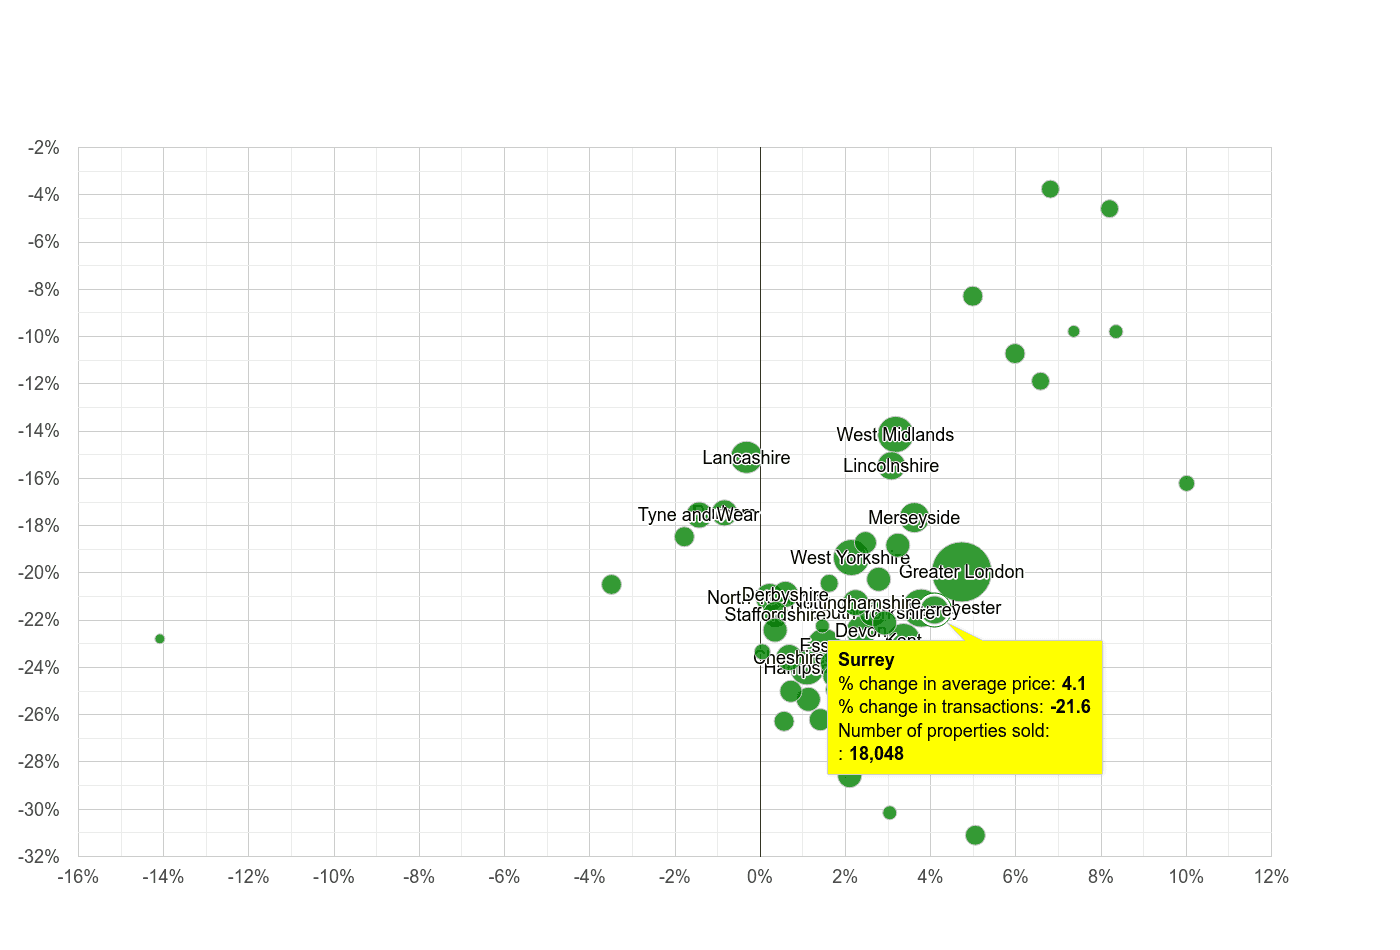 Surrey property price and sales volume change relative to other counties